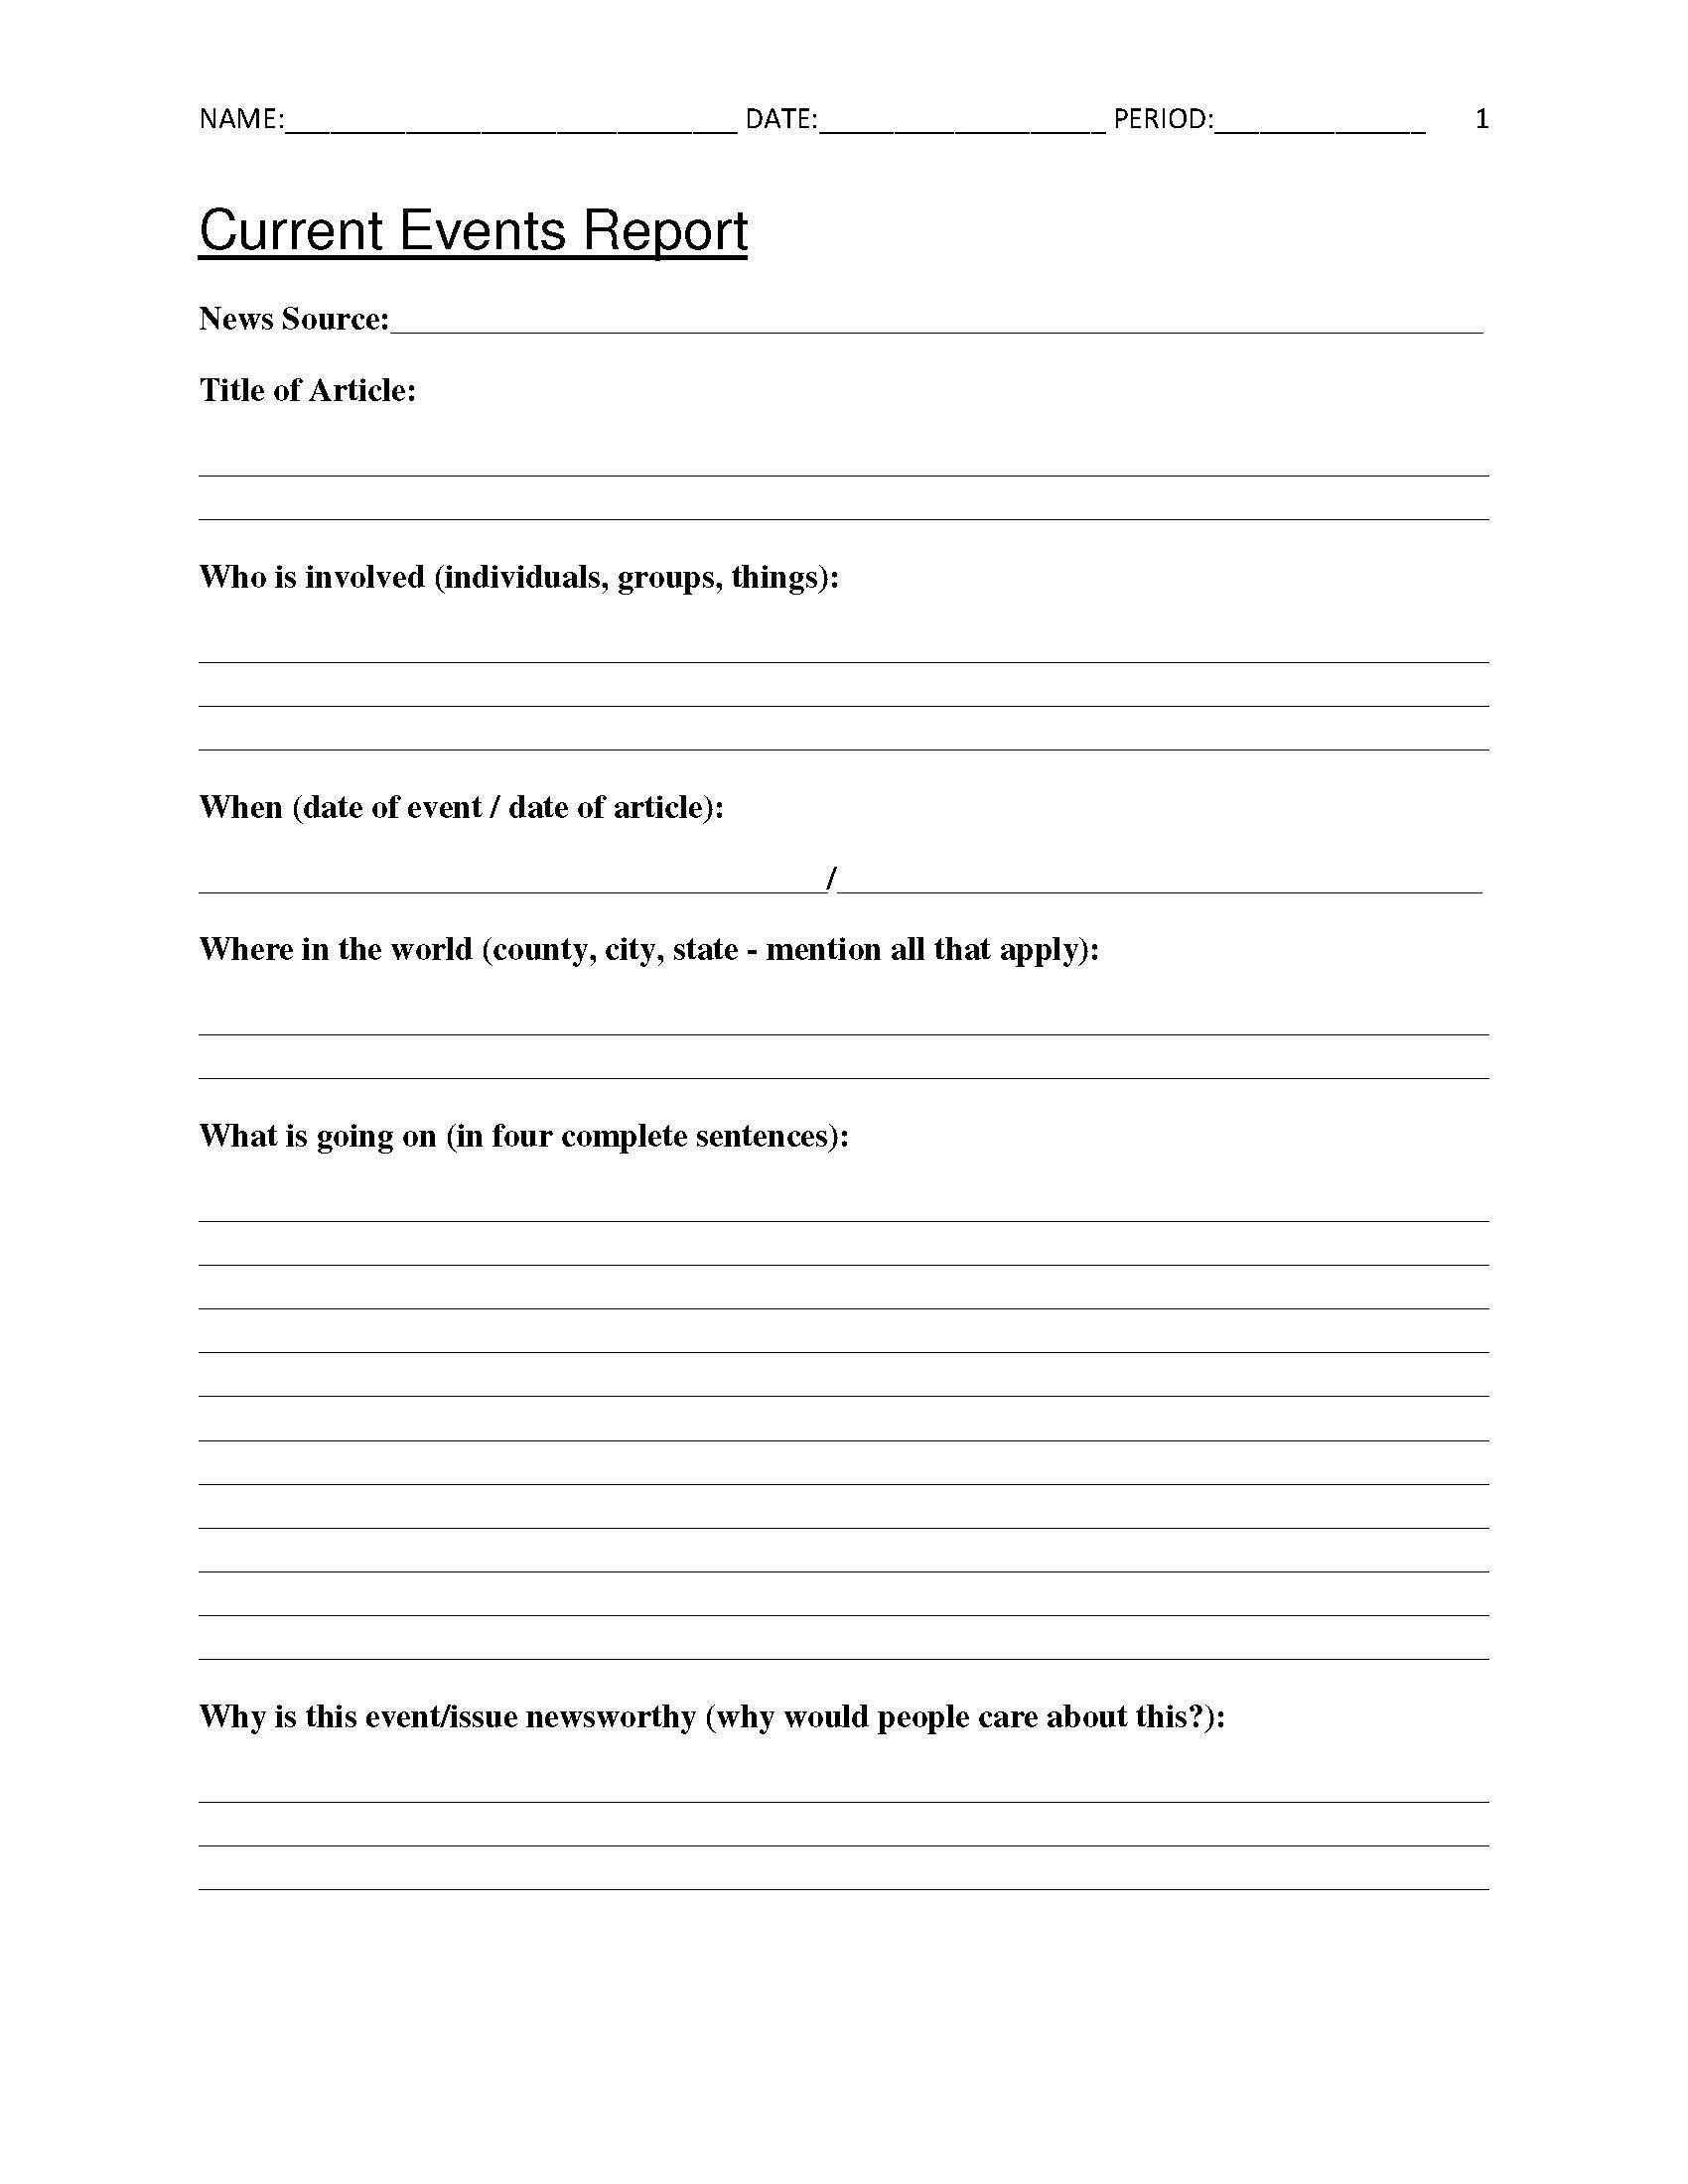 6th grade summarizing worksheets free current events report worksheet for classroom teachers of 6th grade summarizing worksheets